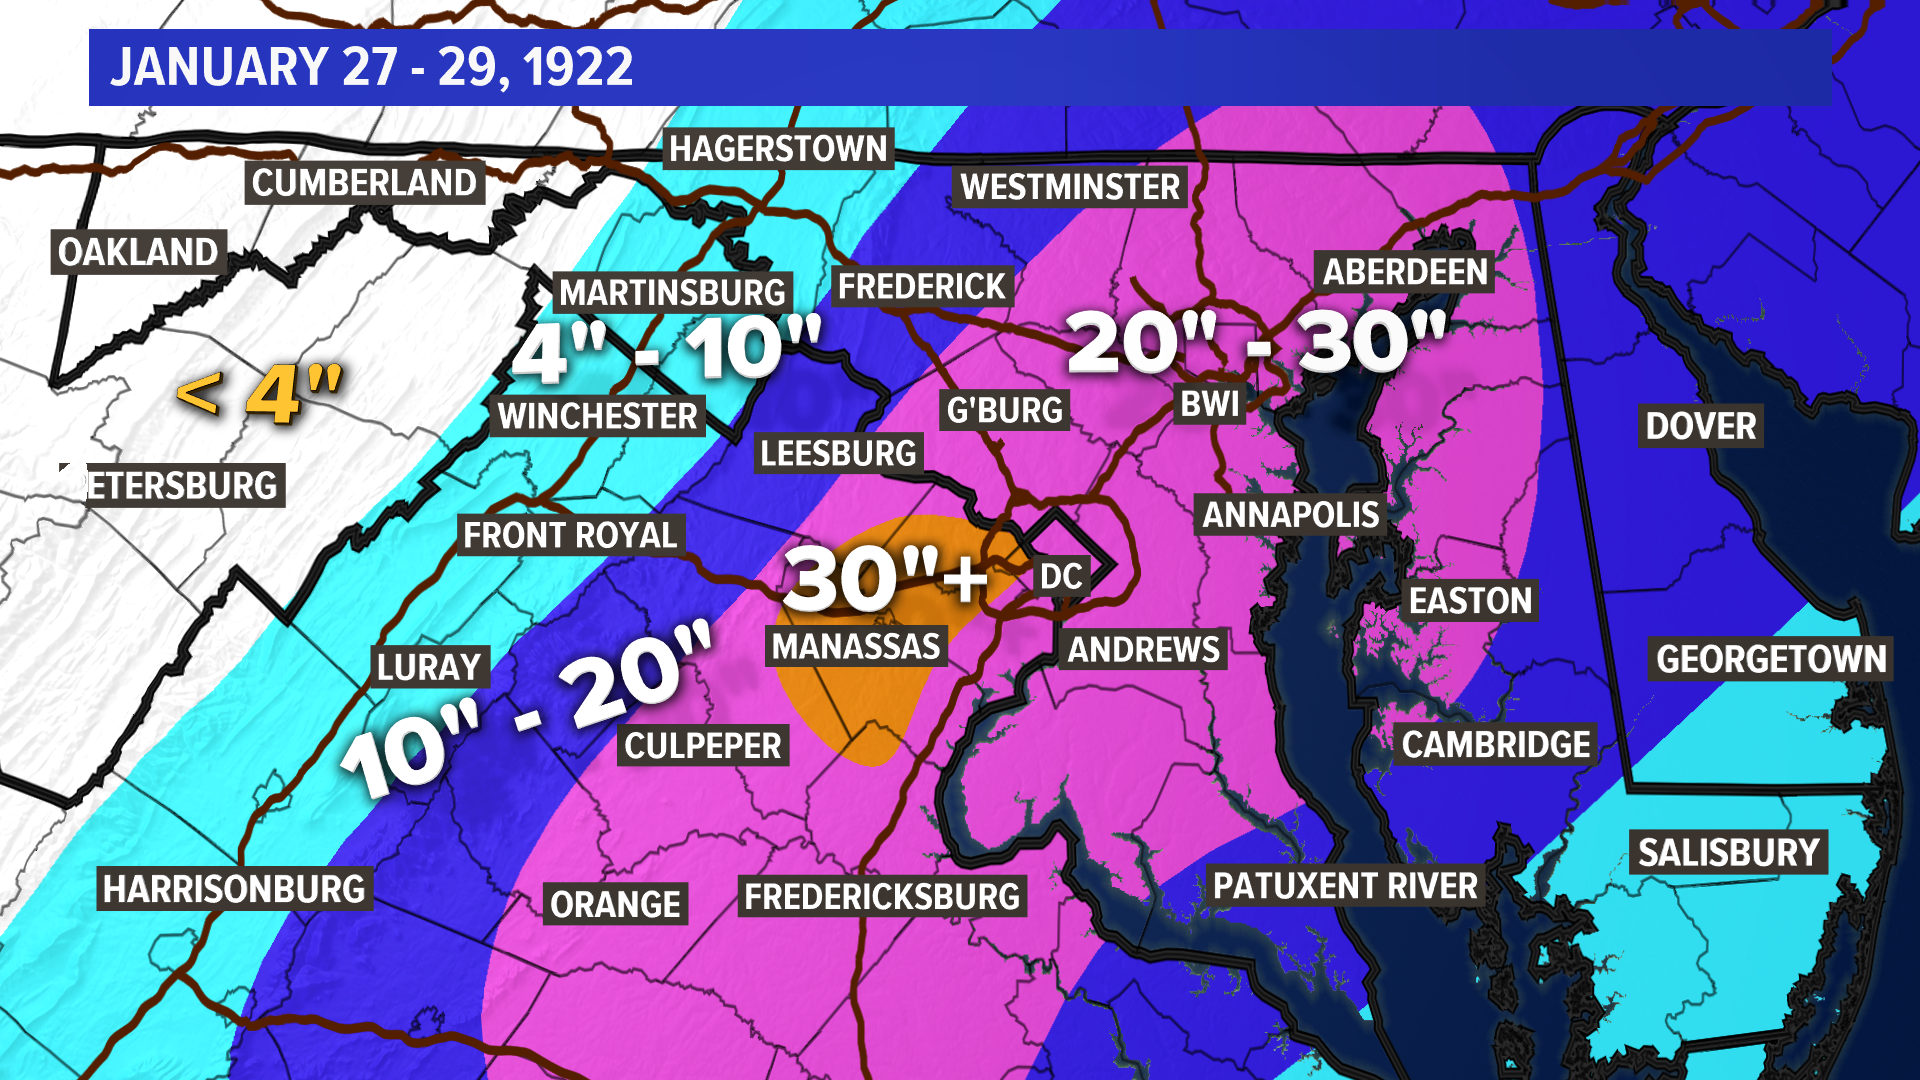 DC's 15 worst winter storms | wusa9.com Snow Fall Totals Map on northeast snow depth map, snow accumulation map, snow belt map, 24 hour snow map, snow in uk today, snow prediction map, first snow map, snow in southeast, new england snow map, snow storm map, national snow map, snow on east coast 2013, snow conditions in new hampshire, snow in upstate new york, snow in newark new jersey, snow forecast map, lake effect snow map, snow kentucky map, snow fall map, snow forecast for washington state,